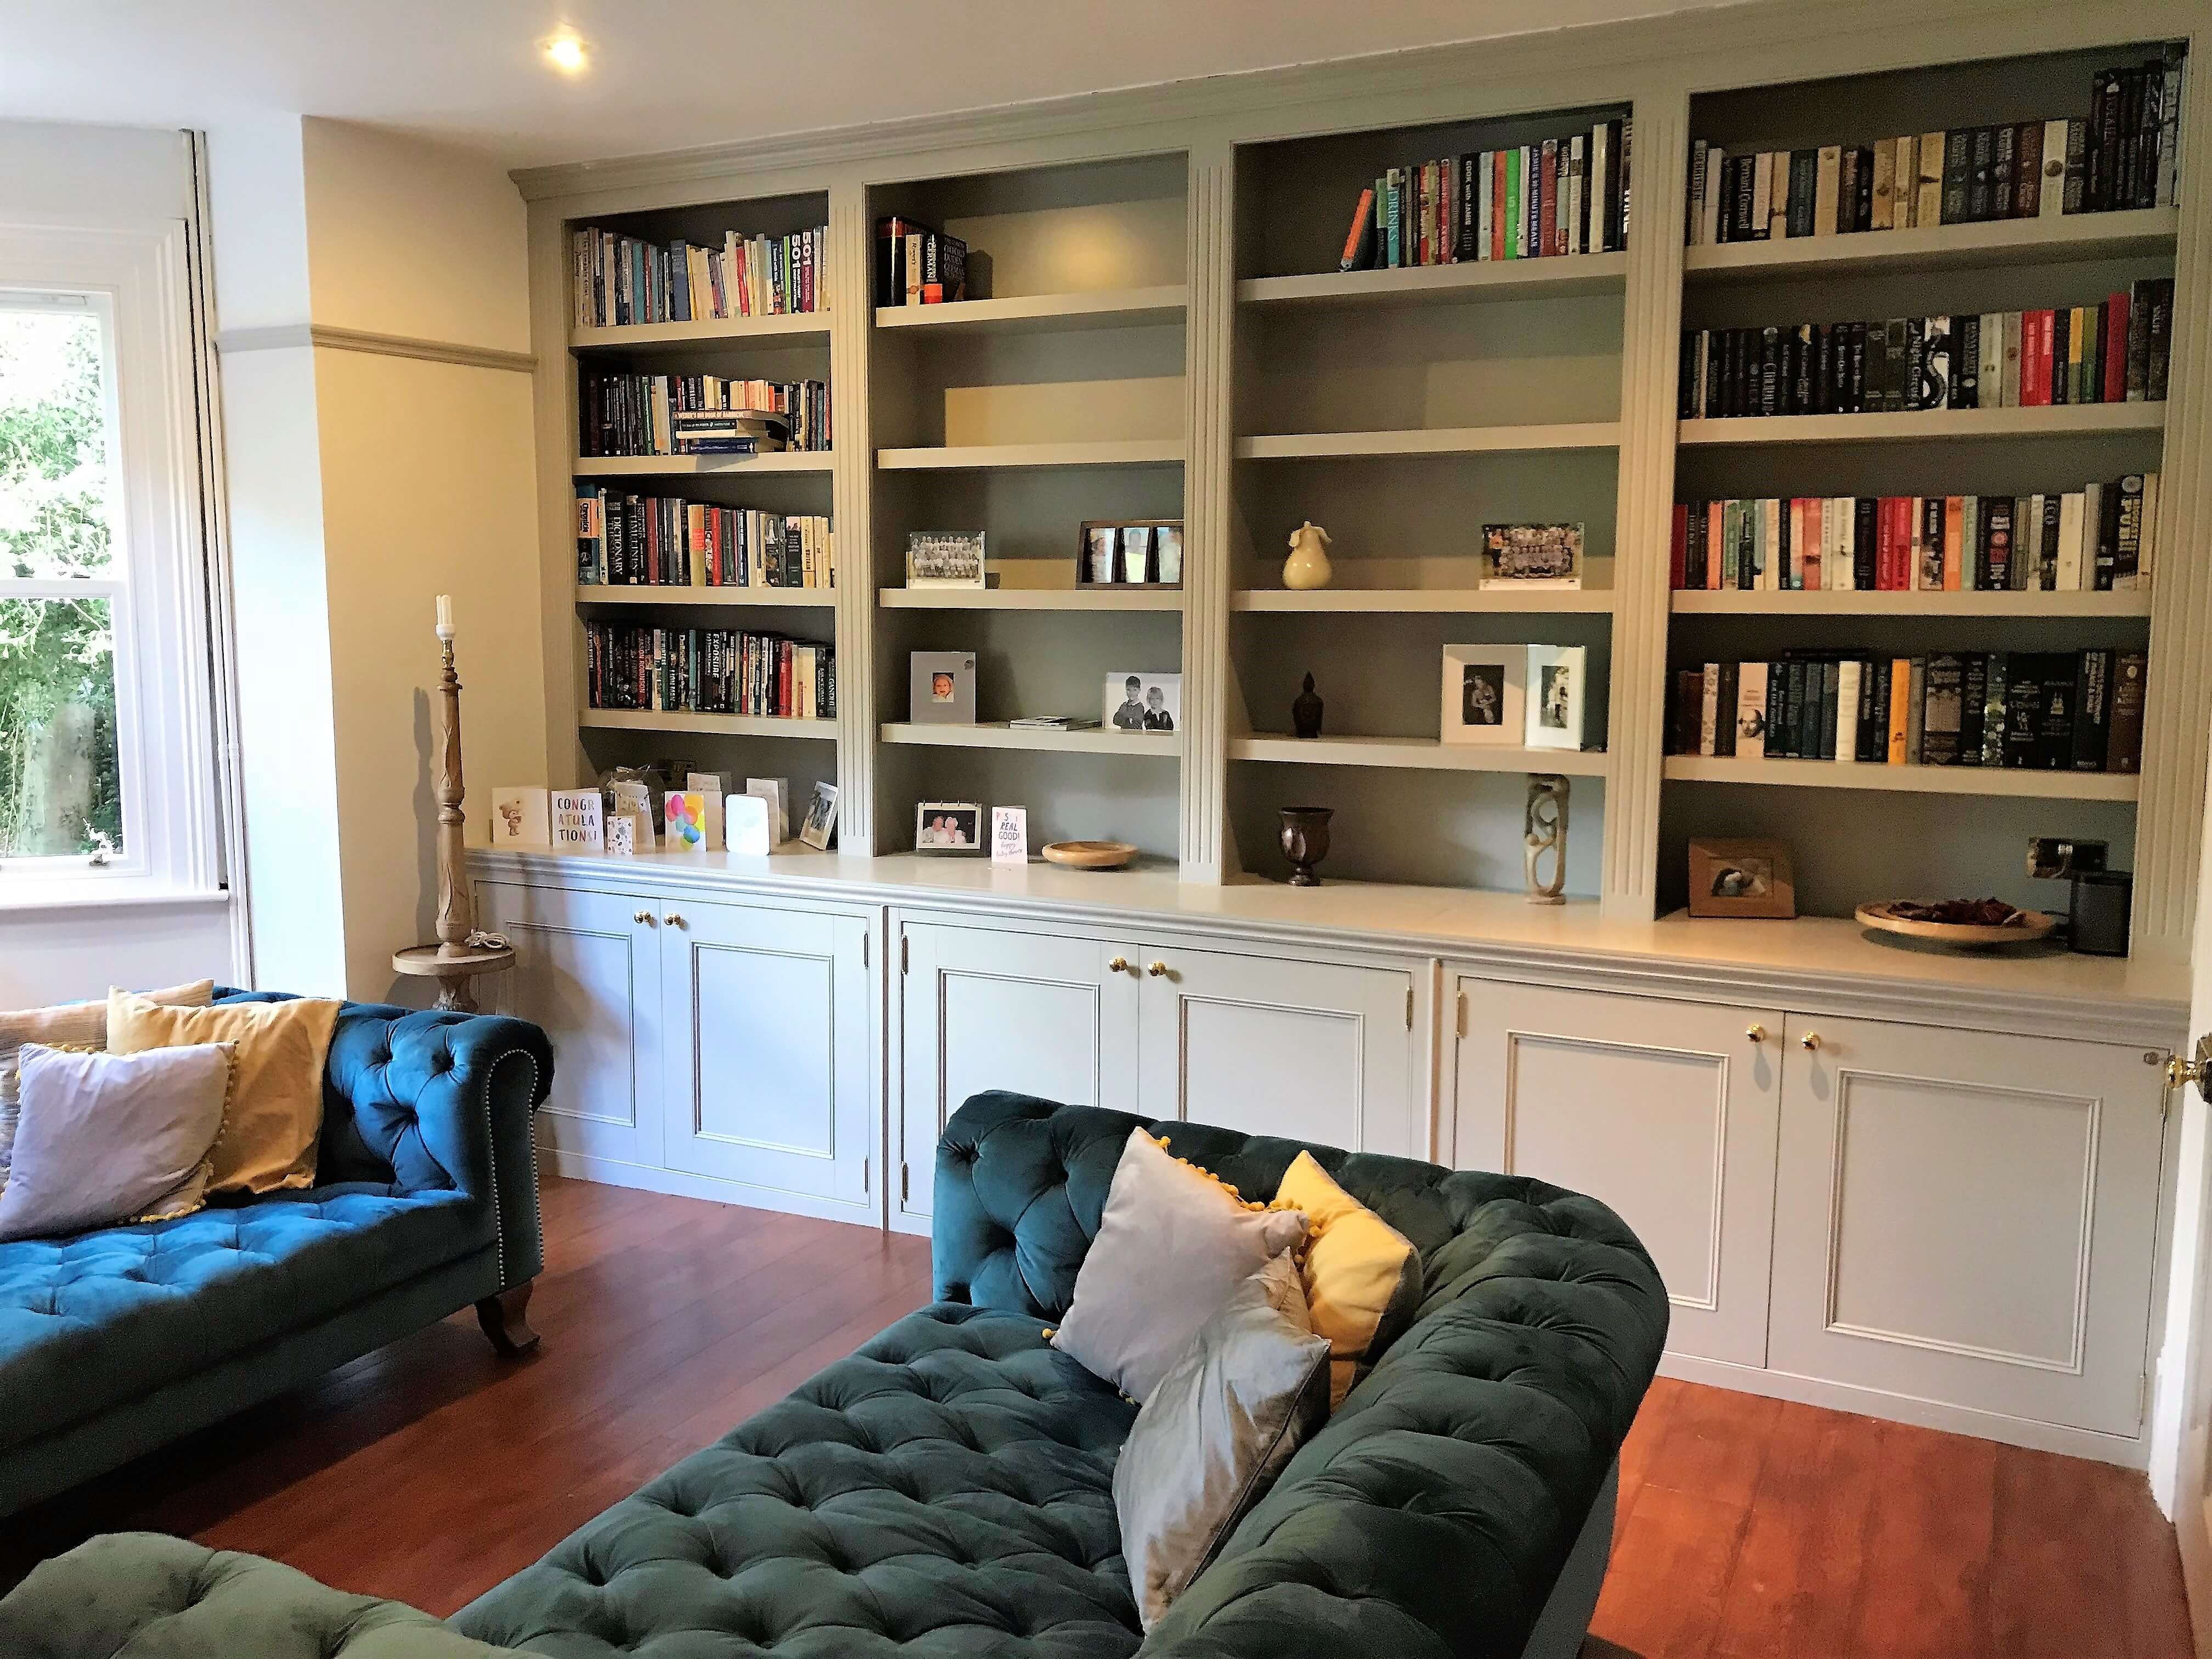 Bespoke Fitted furniture, Storage, Shelves, Fitted Shelf's, Library, Bookcase, Bespoke Bookcase, Leamington Spa, Warwick, Elegant Bespoke living, Joinery, Carpentry